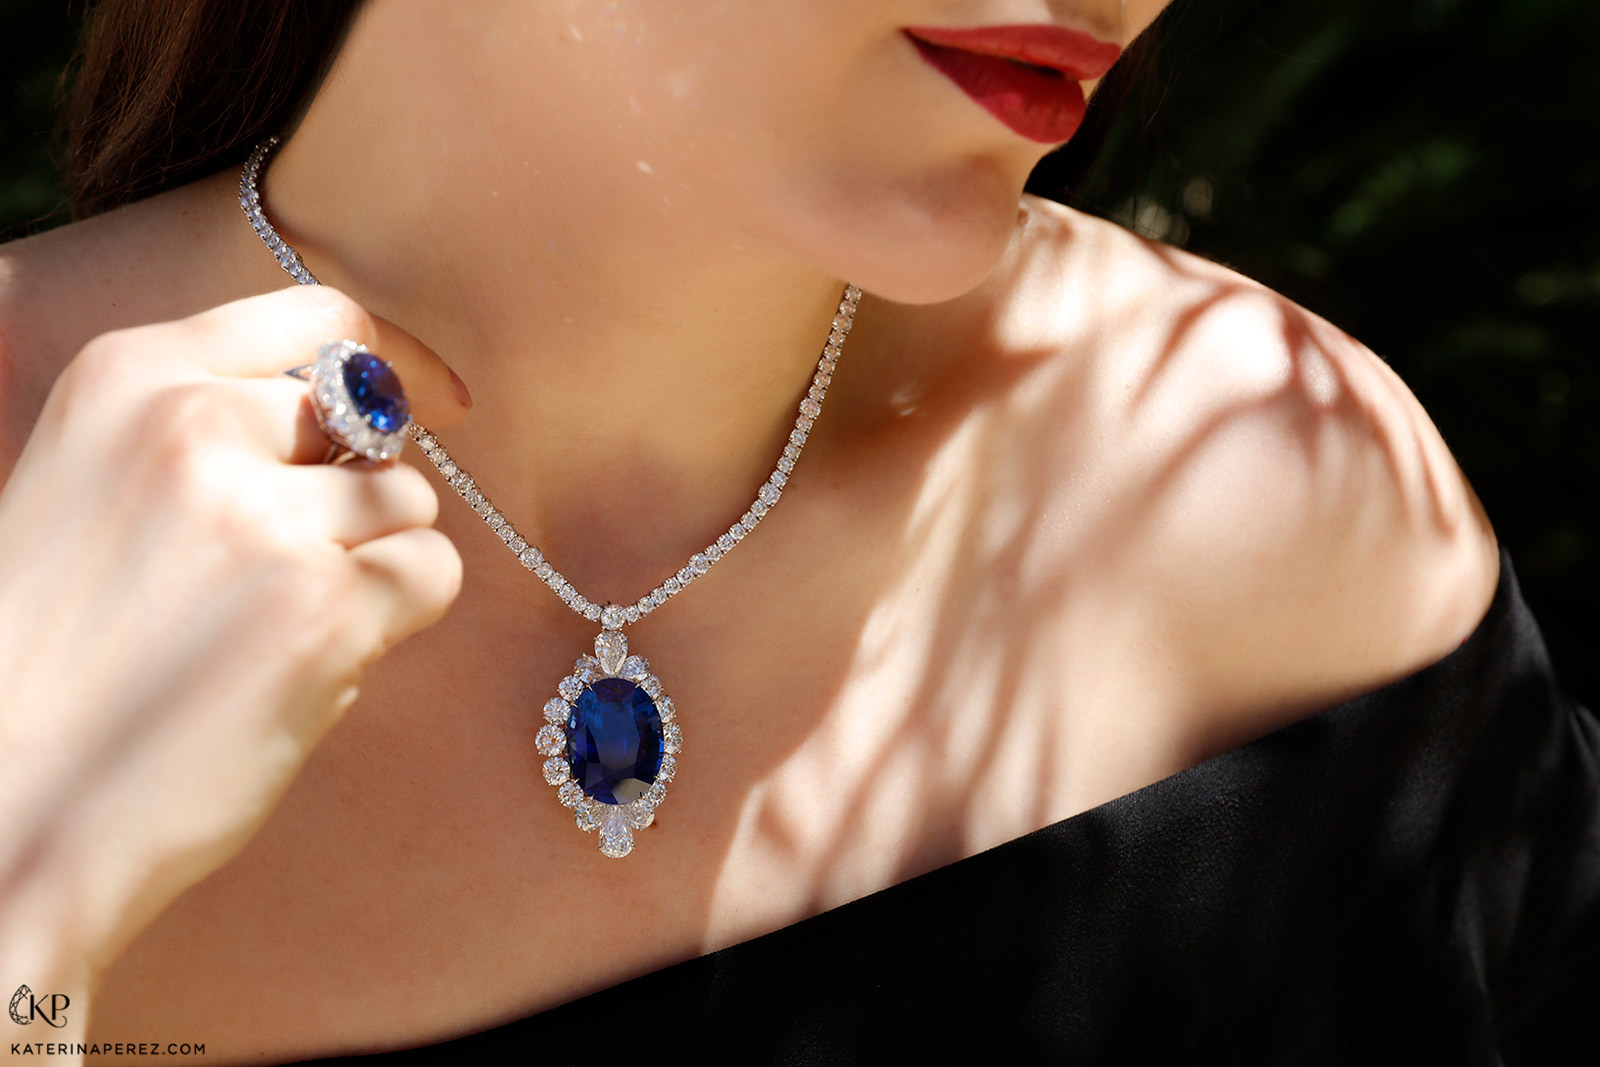 Bayco necklace with 60 carat oval sapphire from Burma and diamonds